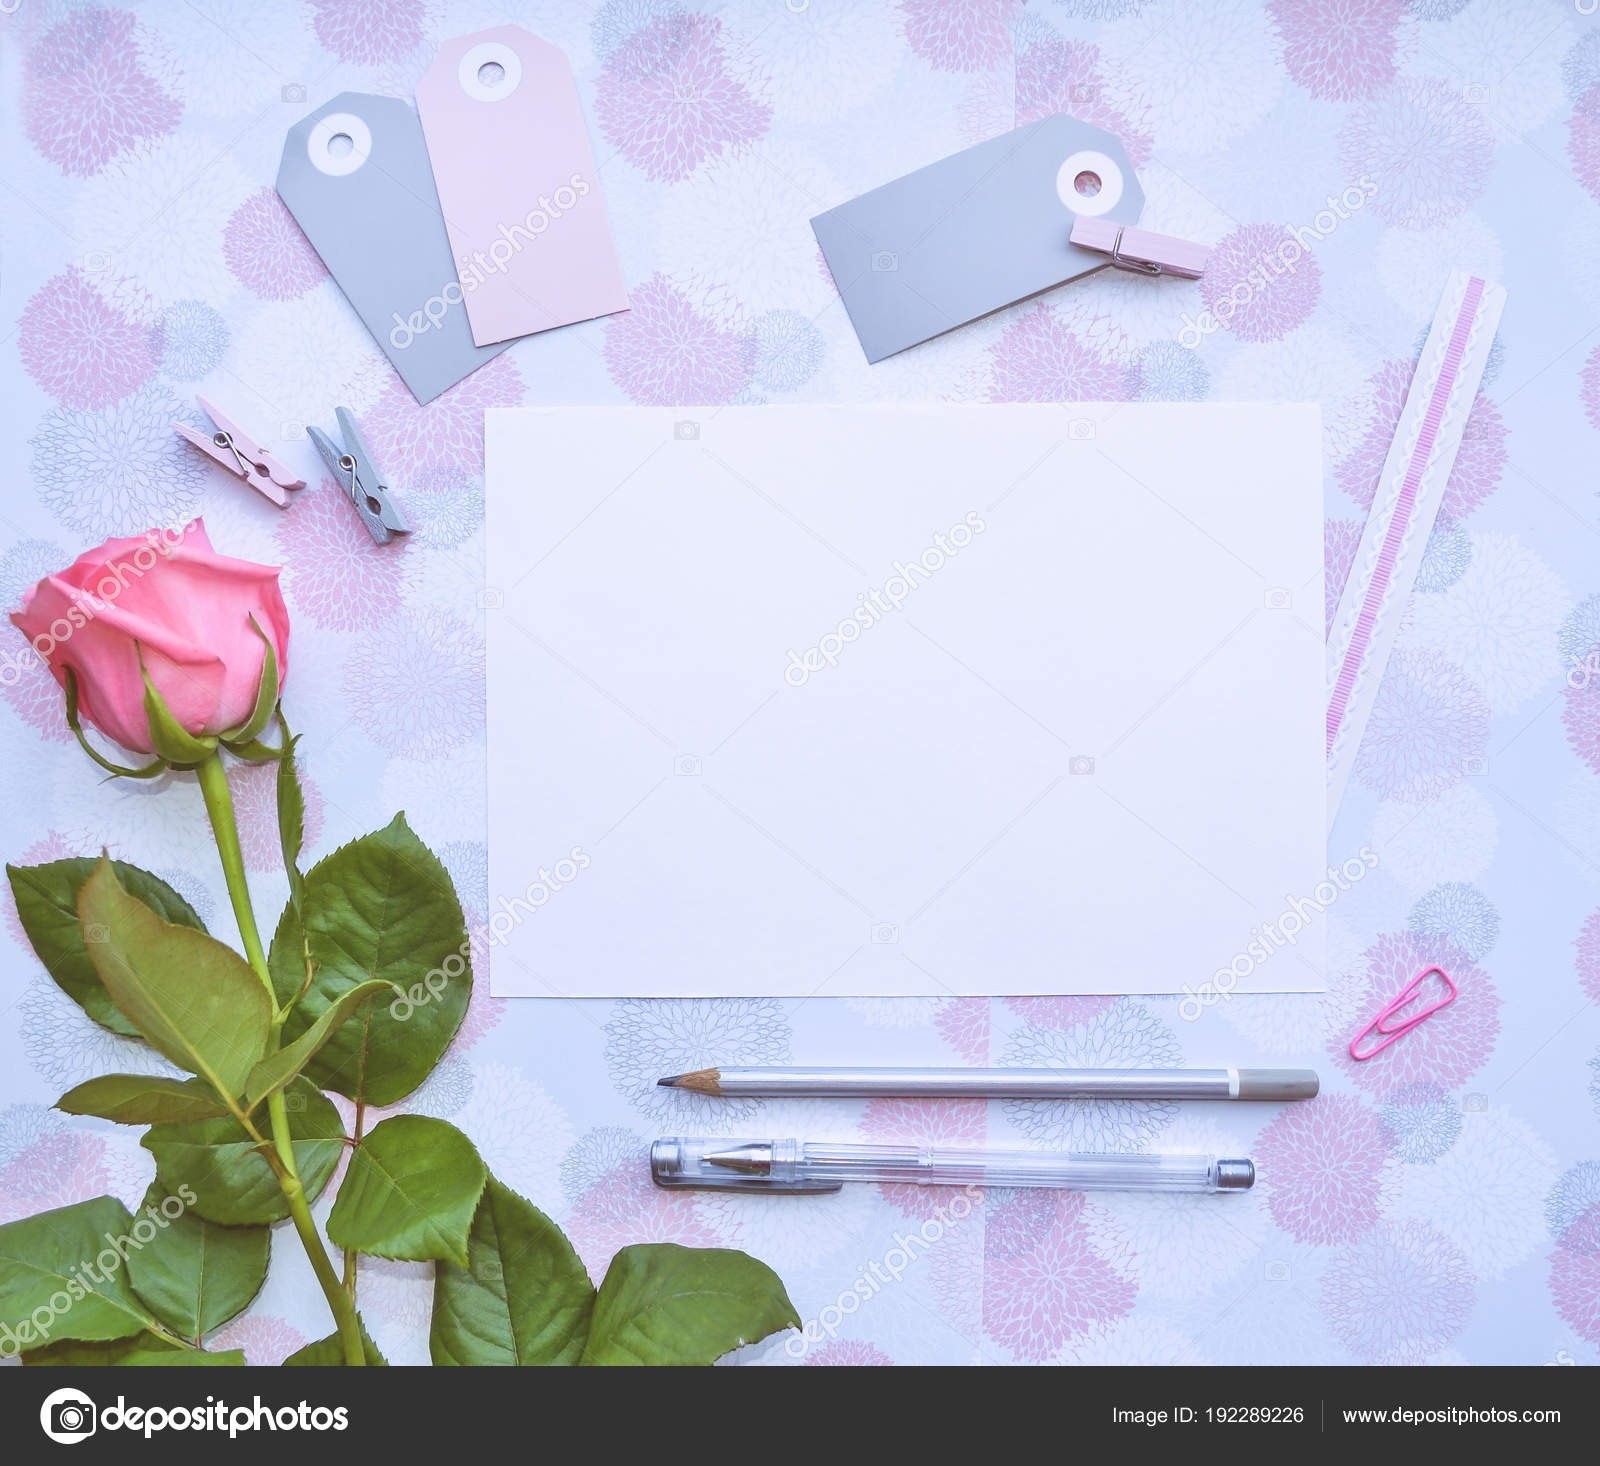 Blank paper stationery badges clothespins hair bands pink rose pens blank paper stationery badges clothespins hair bands pink rose pens stock photo mightylinksfo